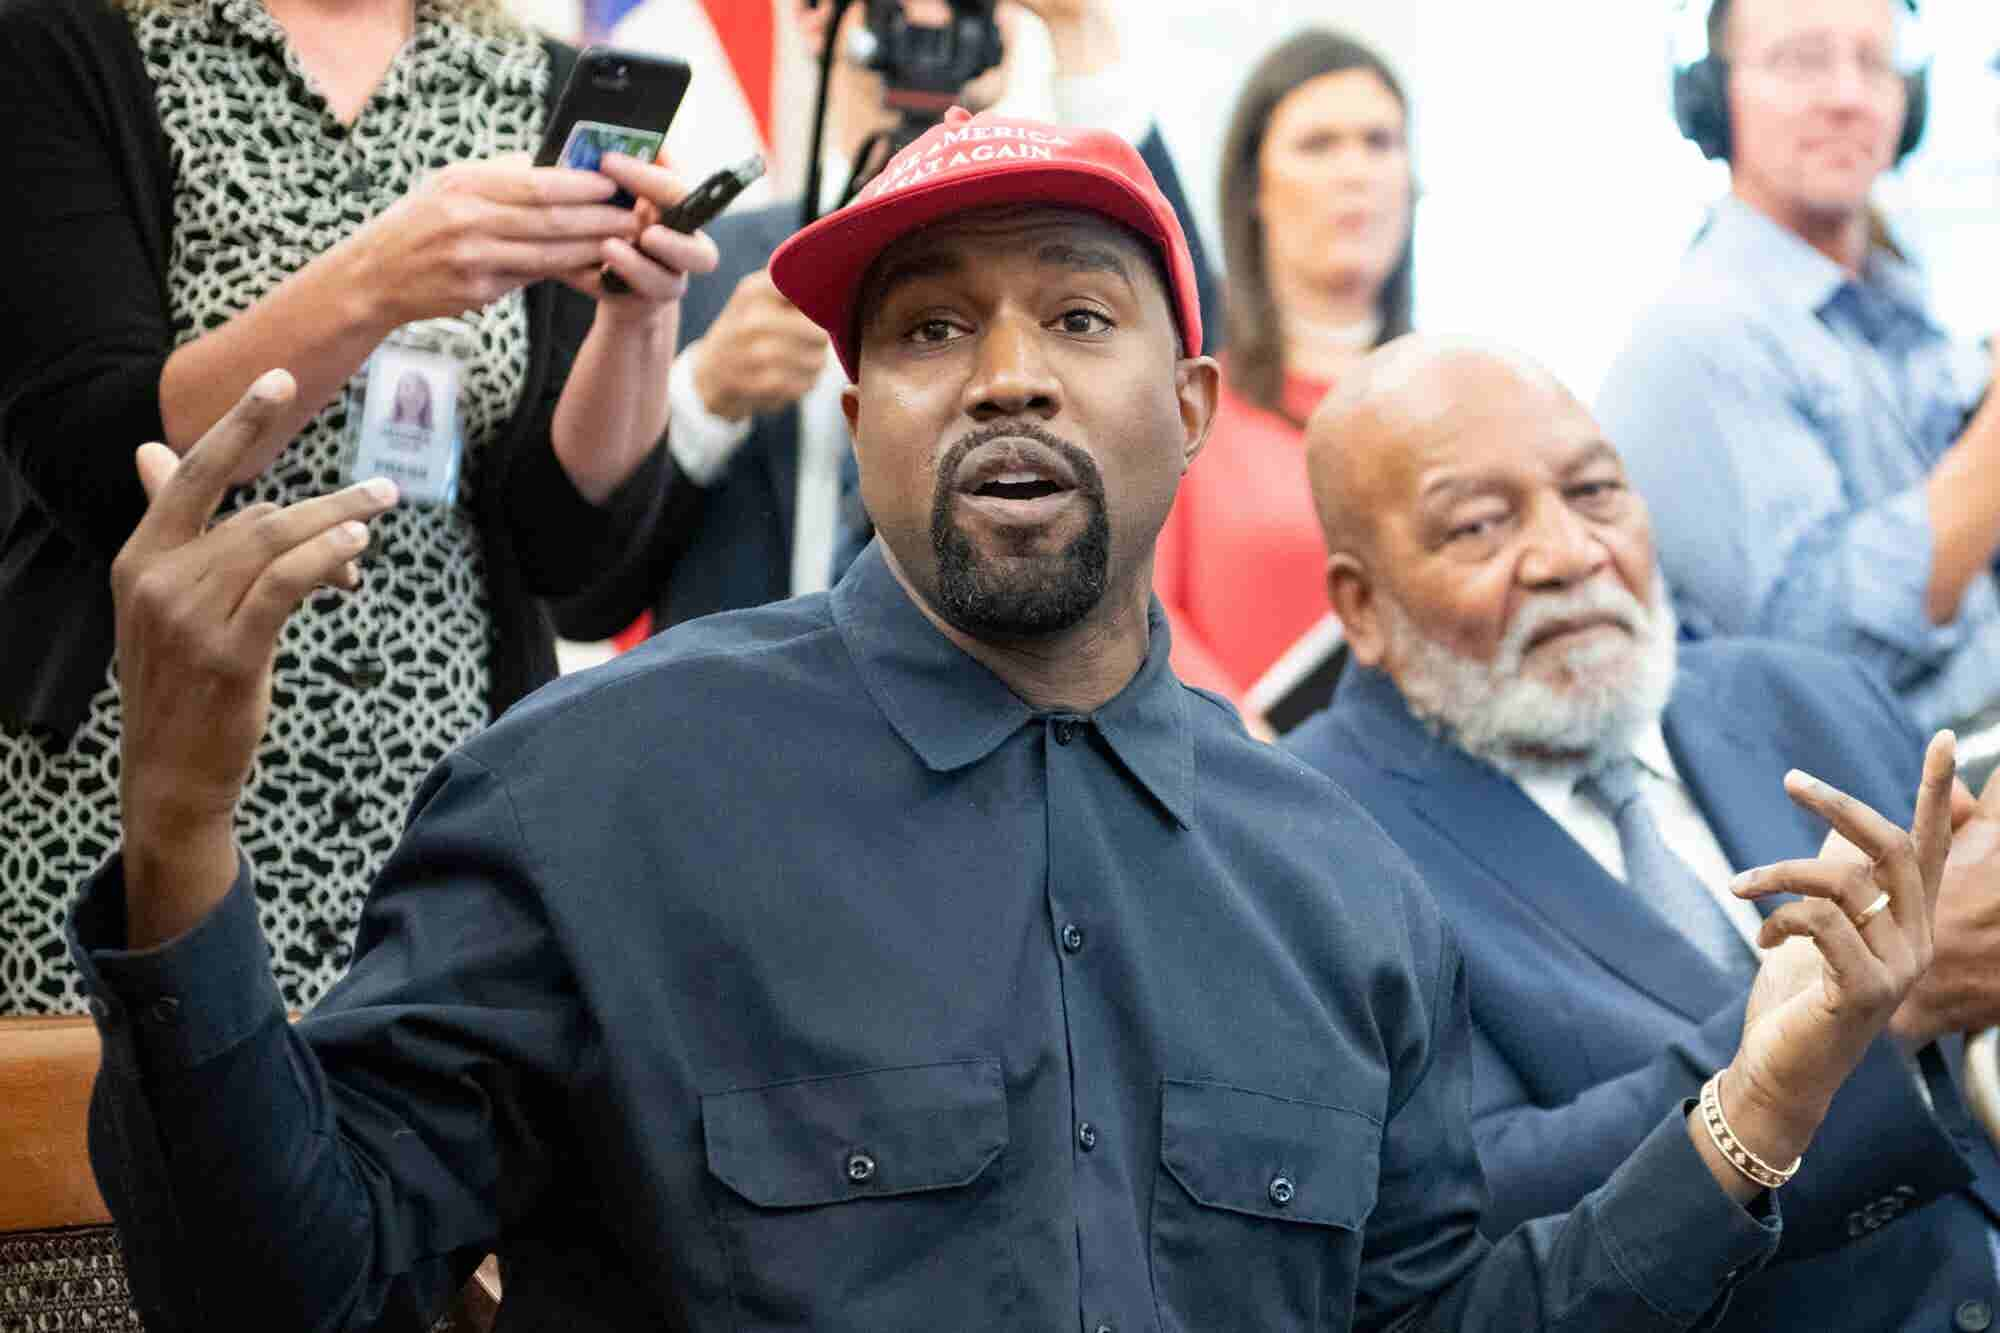 Kanye West Is Hard to Ignore. Here's What You Can Learn From His Antics.